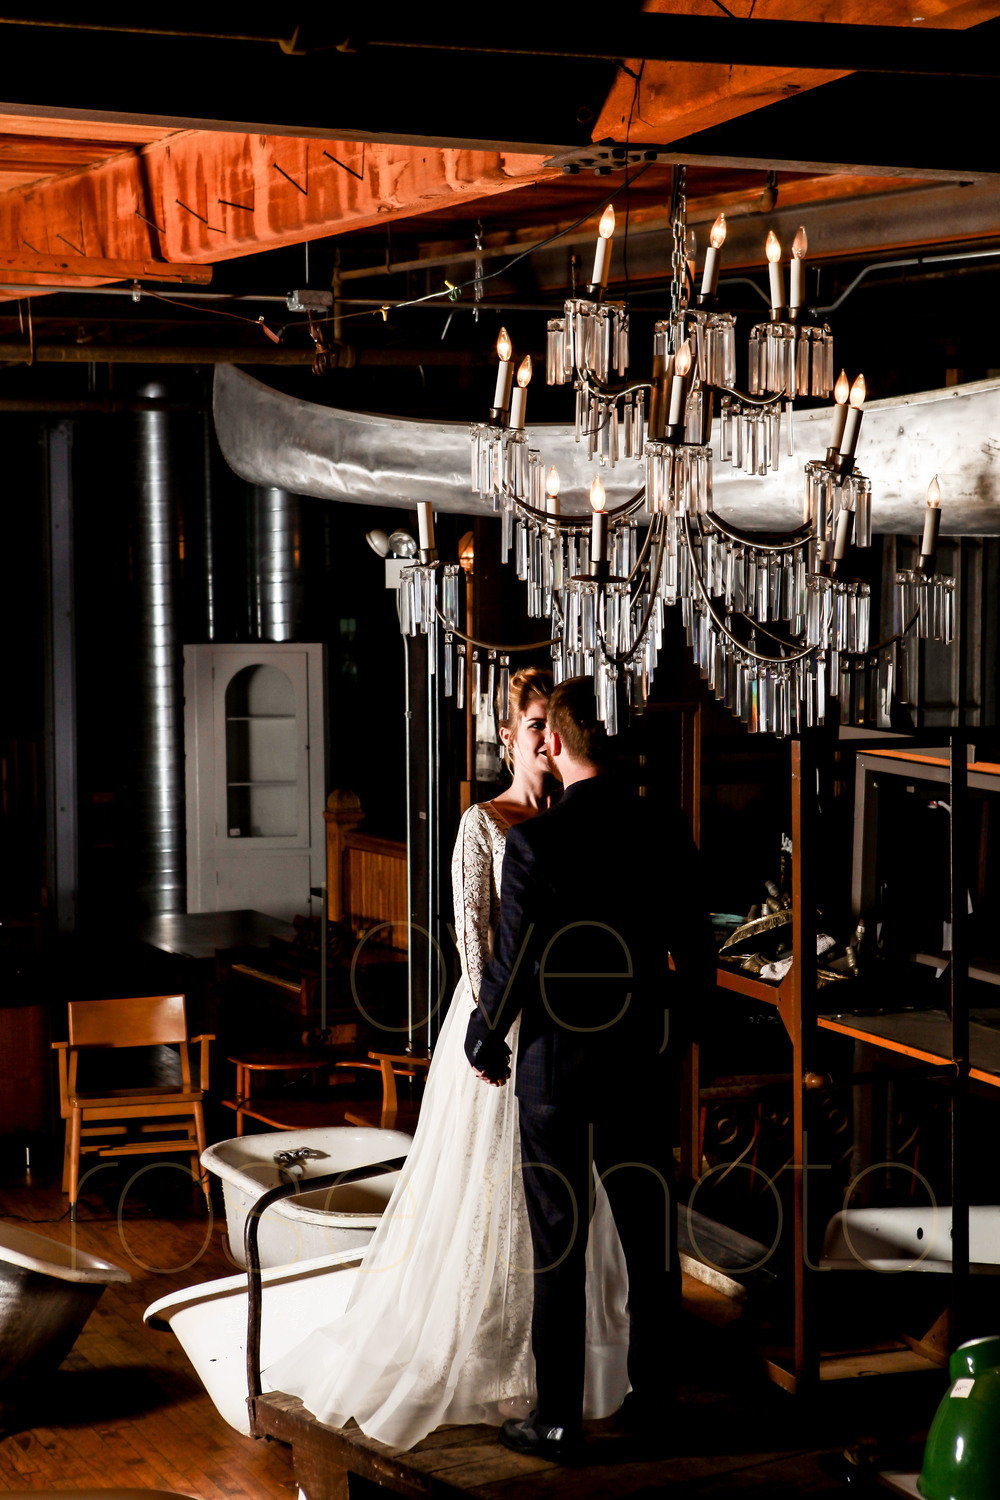 West Fulton Chicago Wedding Venue Salvage One photography enagement photos bride groom first dance-23.jpg